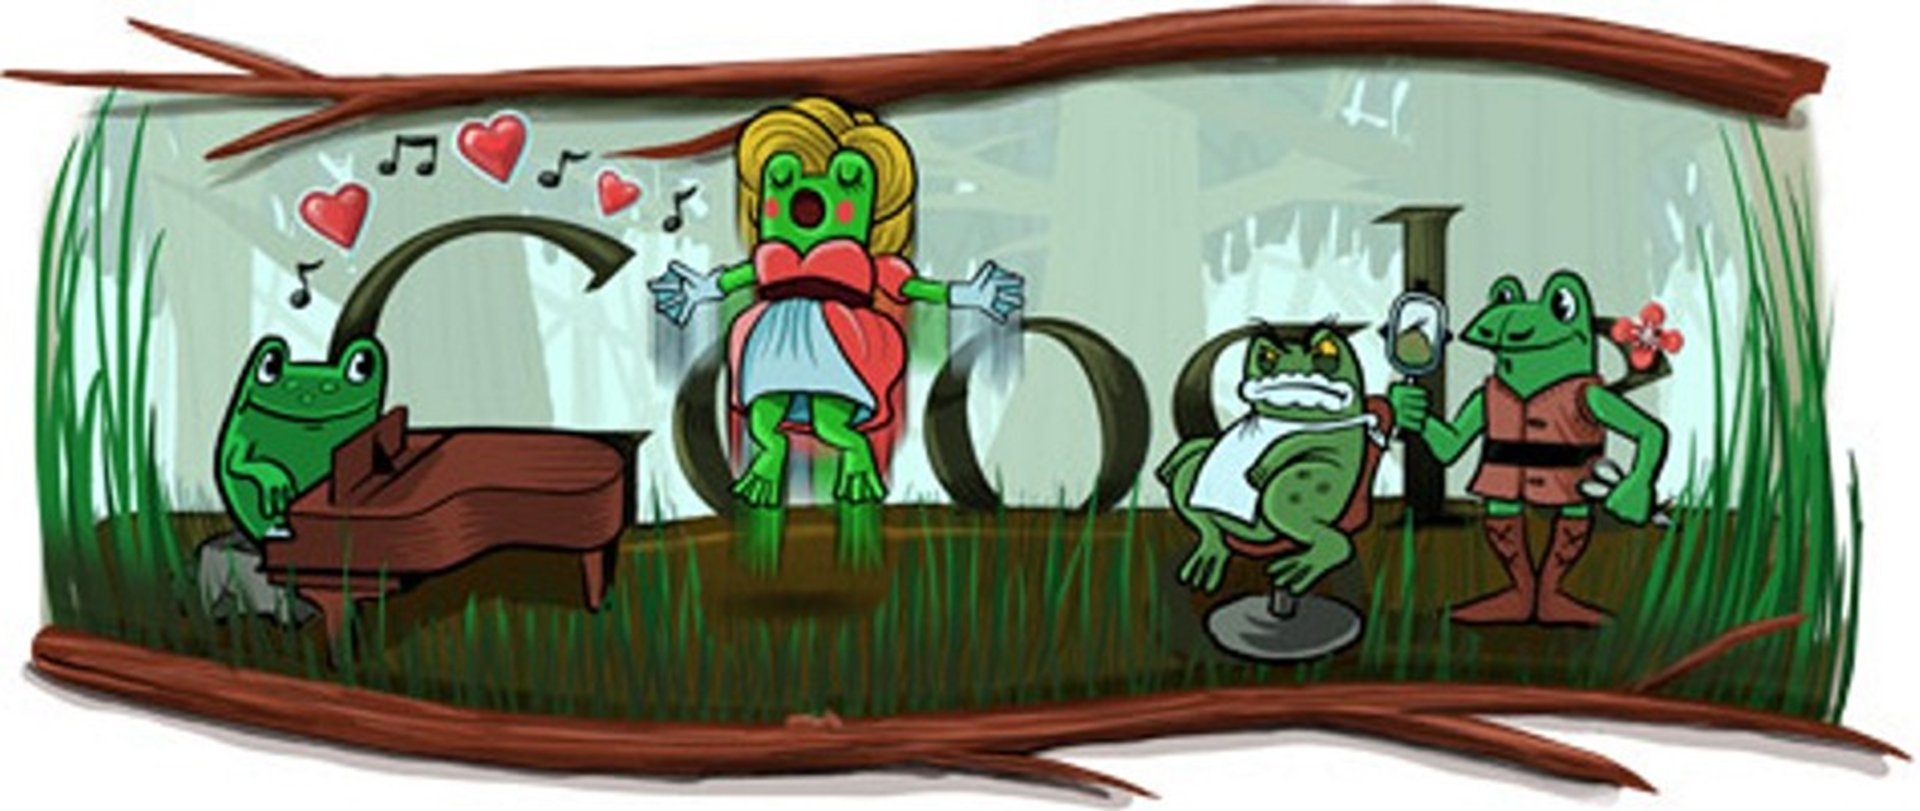 Frogs Google Doodle Leap Year 2012